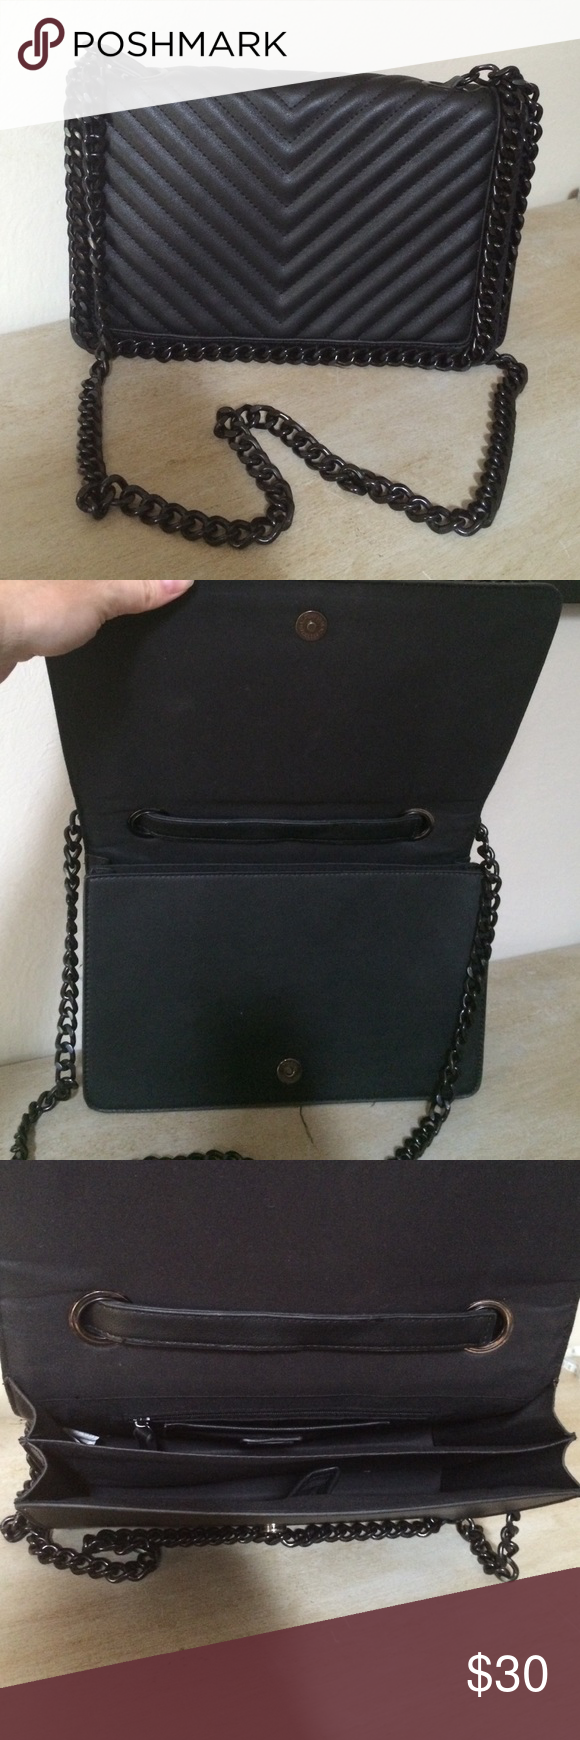 1449f3dada7 Aldo Greenwald black chain strap purse Excellent condition! Like new!  Measures 12